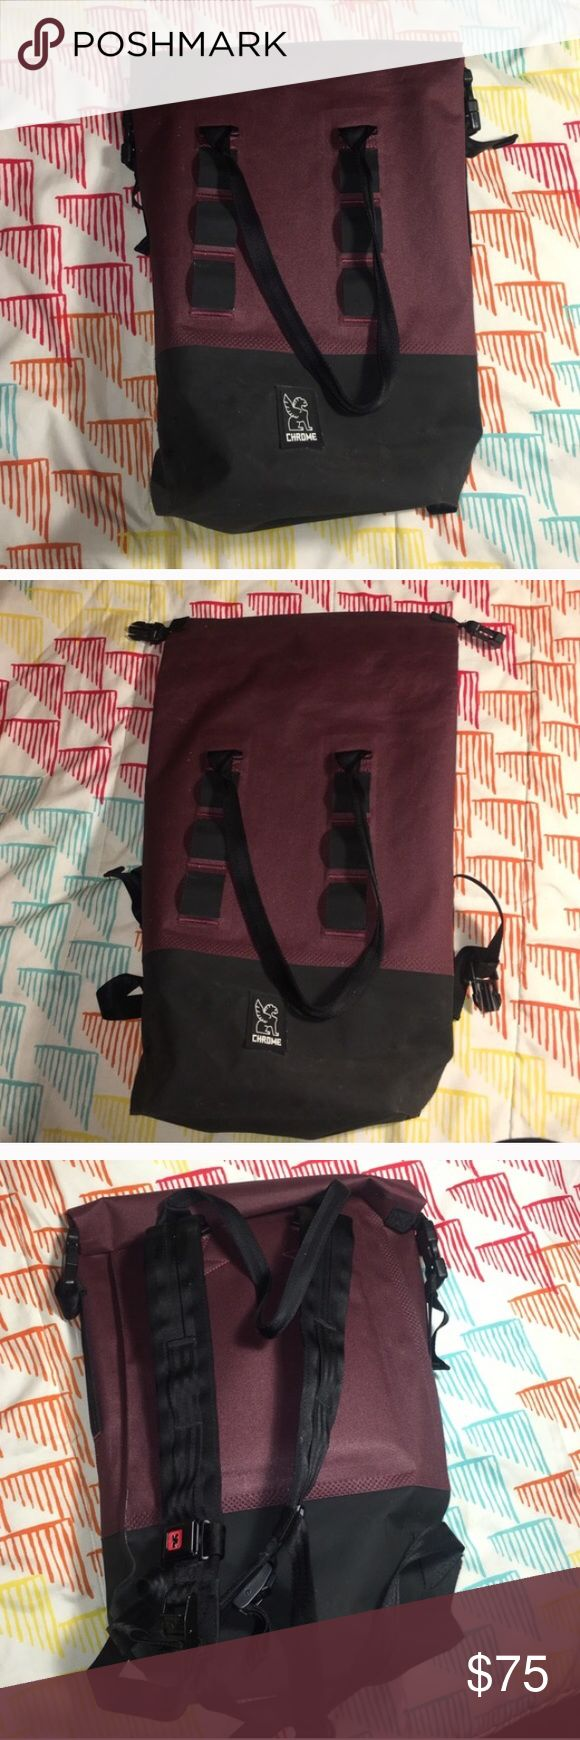 Chrome roll top backpack In good condition! Has buckle for extra support. Very comfortable and structured. Weatherproof, great for bike riders. Colors are black and maroon. Chrome Bags Backpacks